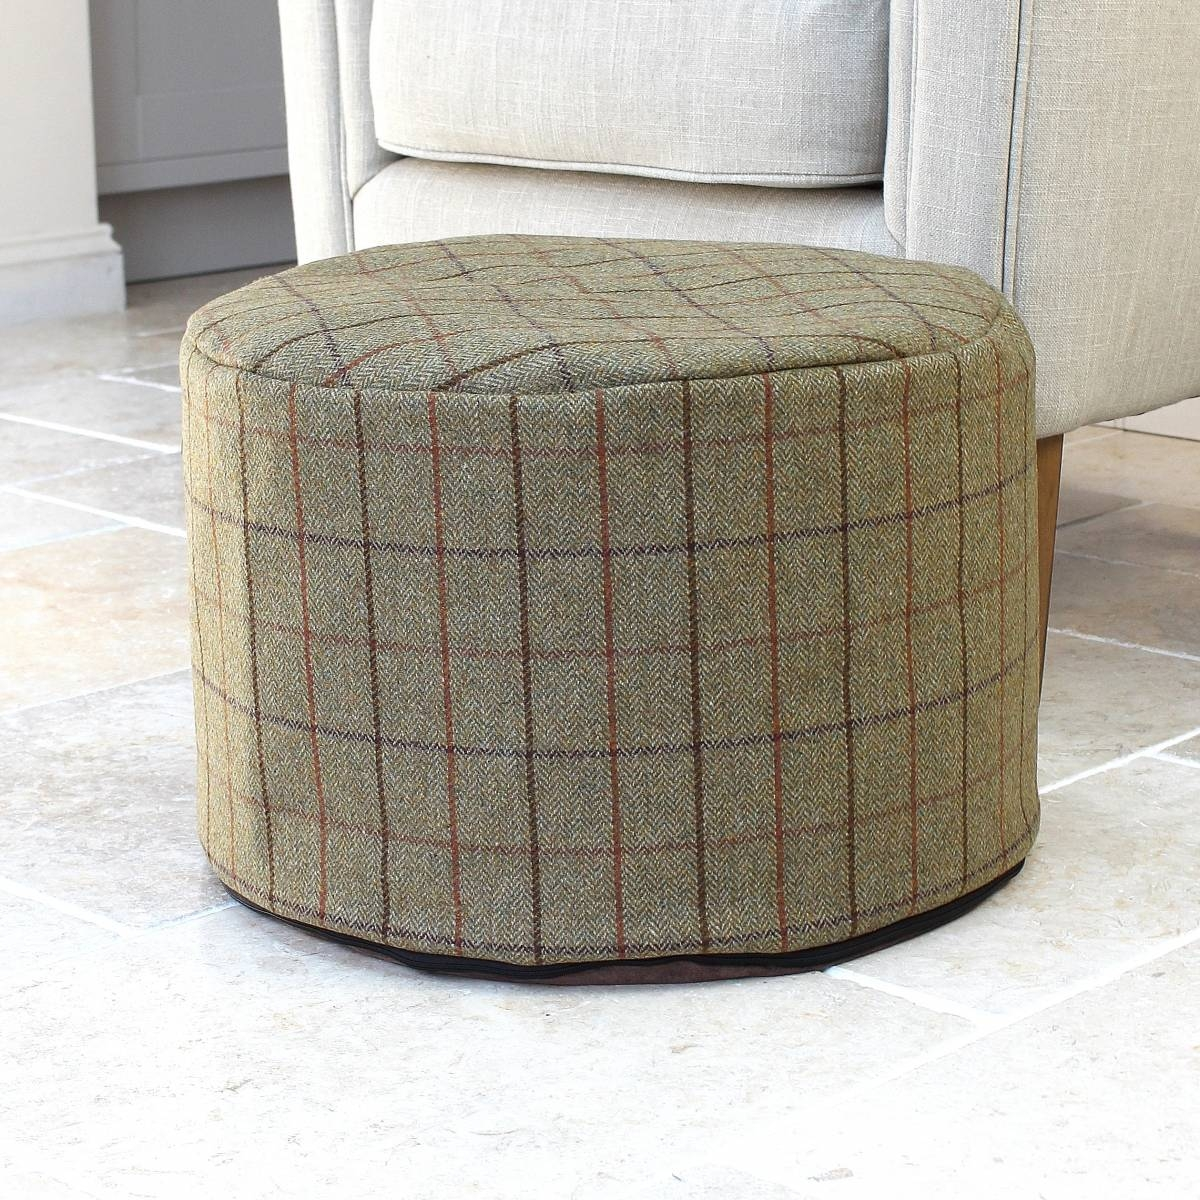 100 Wool Fabric Footstool Traditional Green Check Wool Fabric Stool Intended For Fabric Footstools And Pouffes (Image 1 of 15)